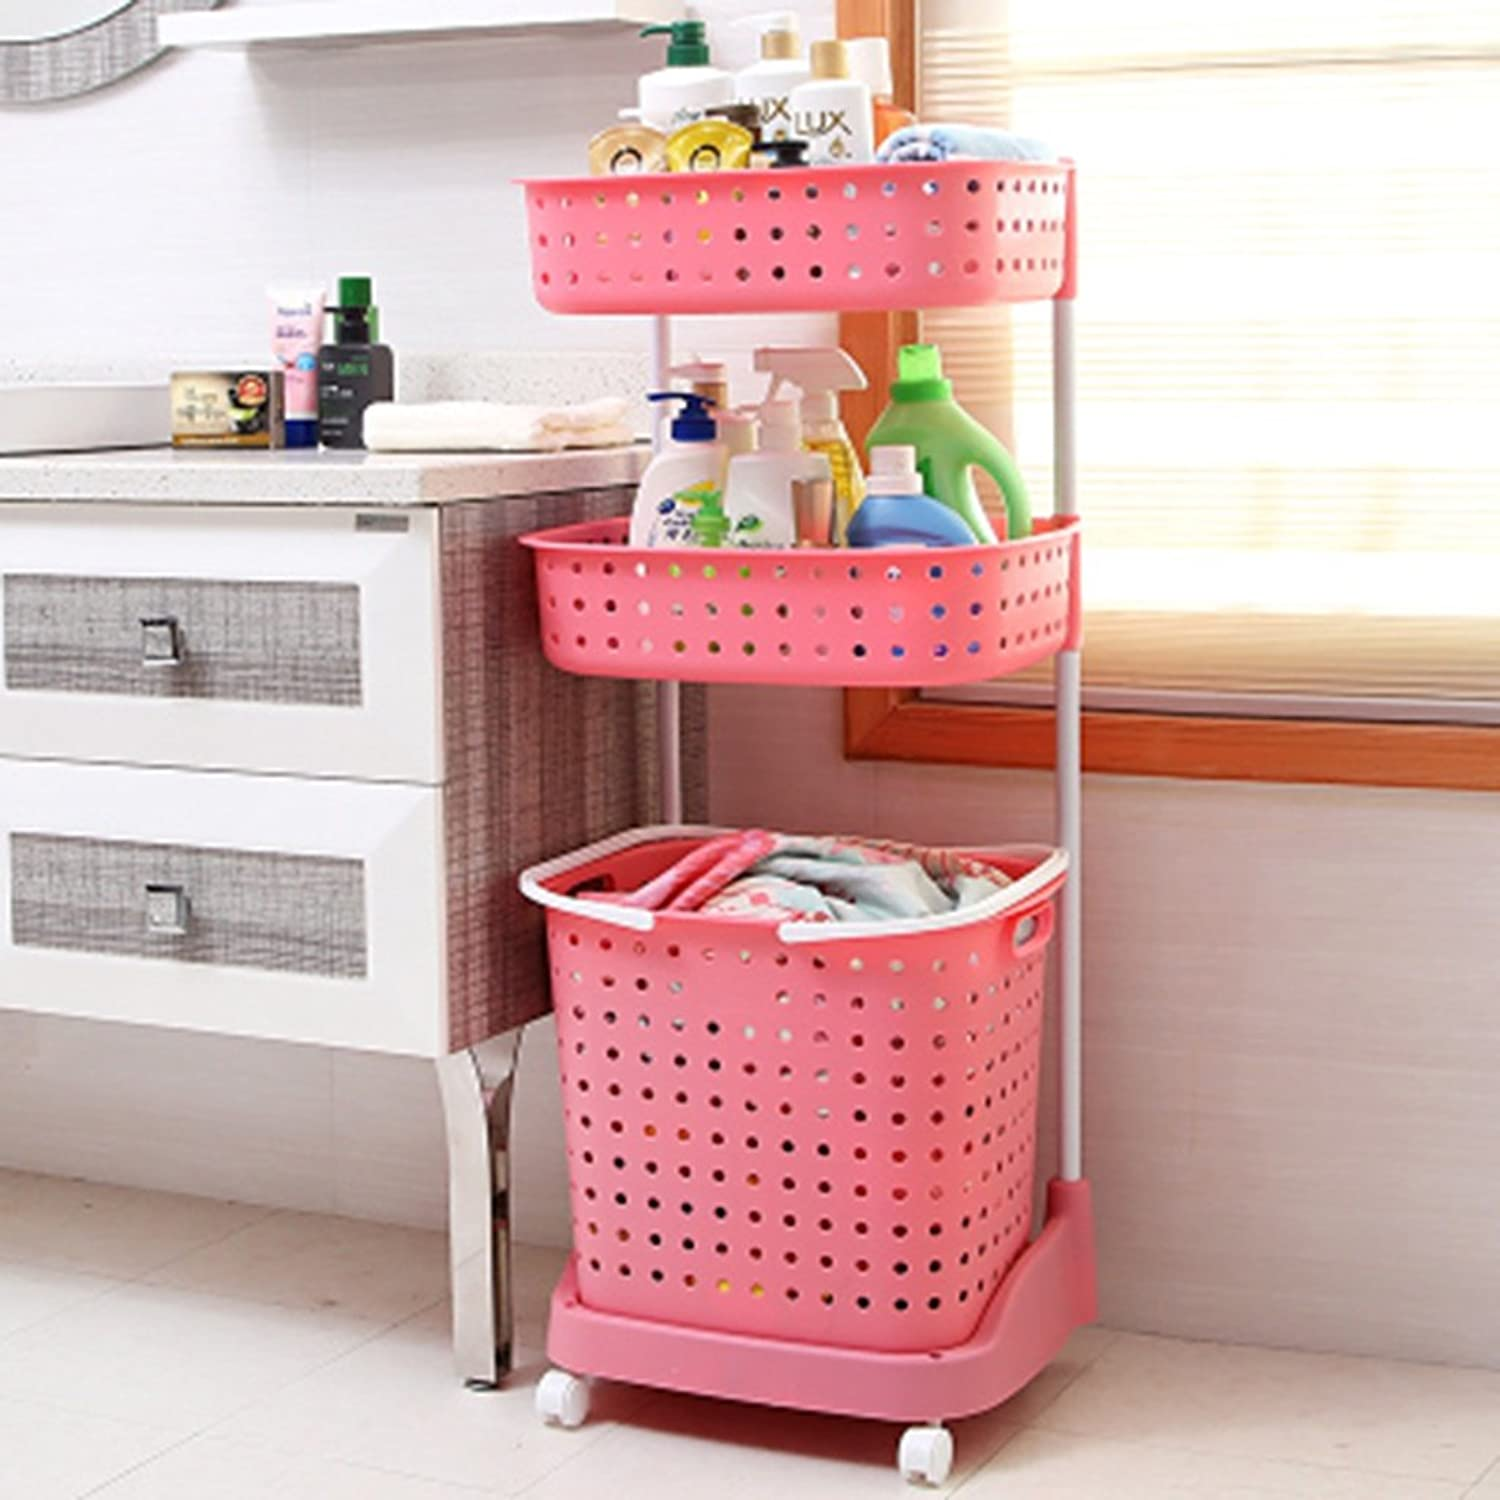 Cpp Shelf Bathroom Bathroom Shelves Placement Bathroom with Storage Rack Toilet Shelves (color   Pink)